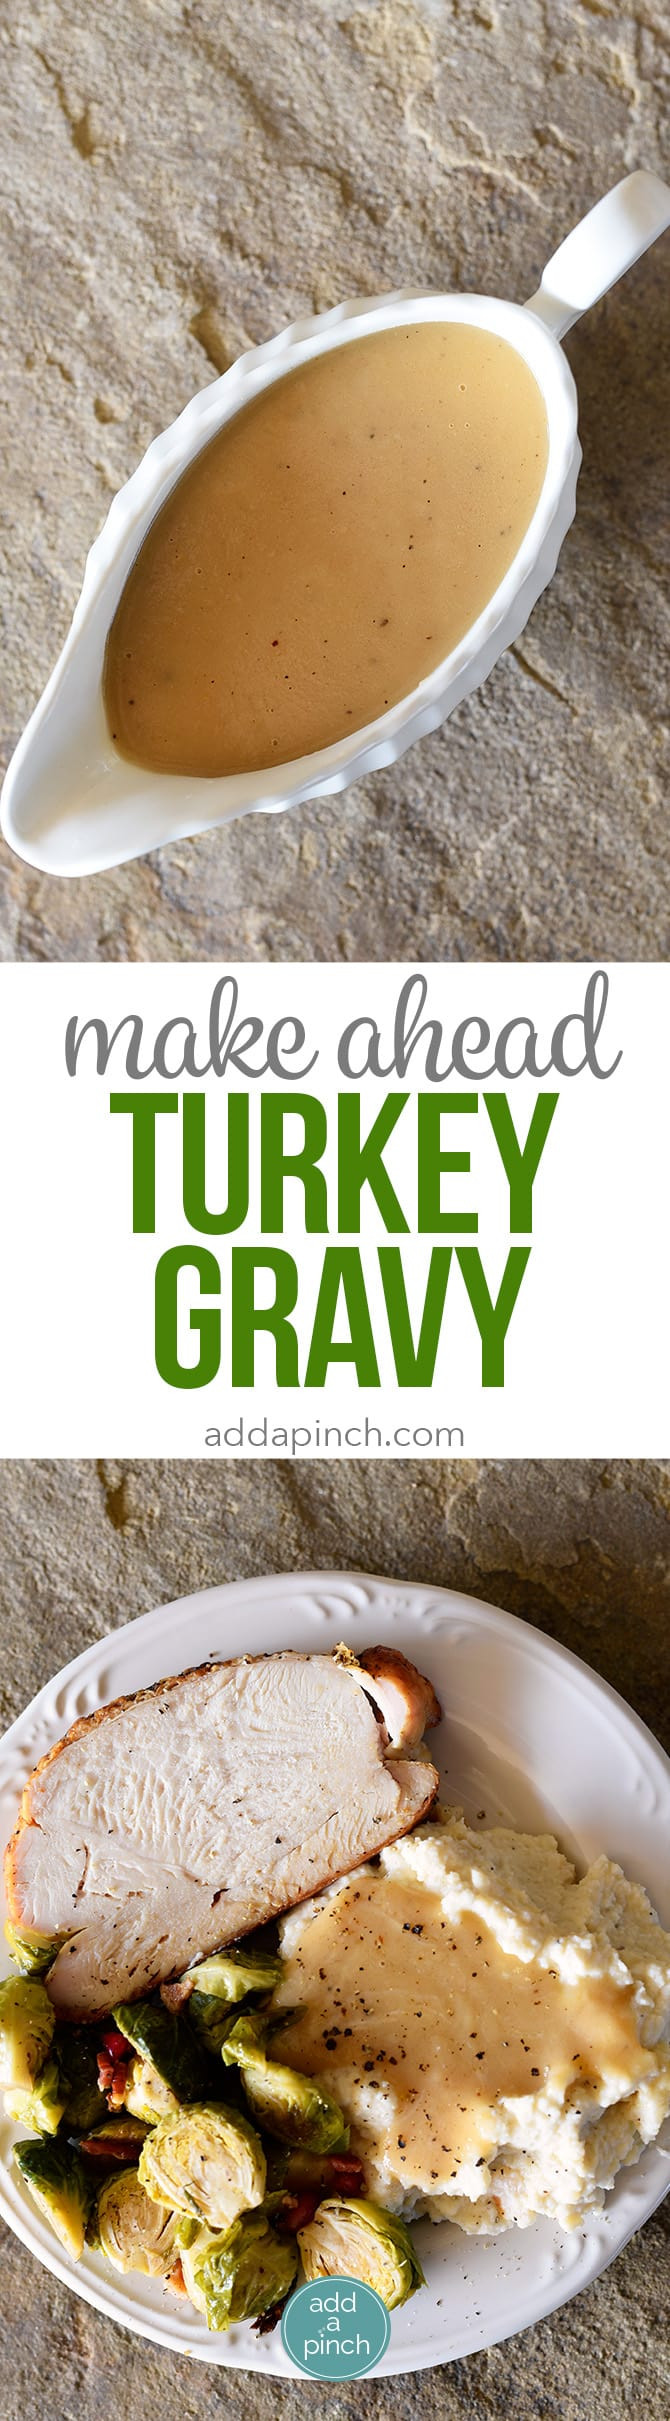 Make Ahead Turkey Gravy  Make Ahead Turkey Gravy Recipe Add a Pinch